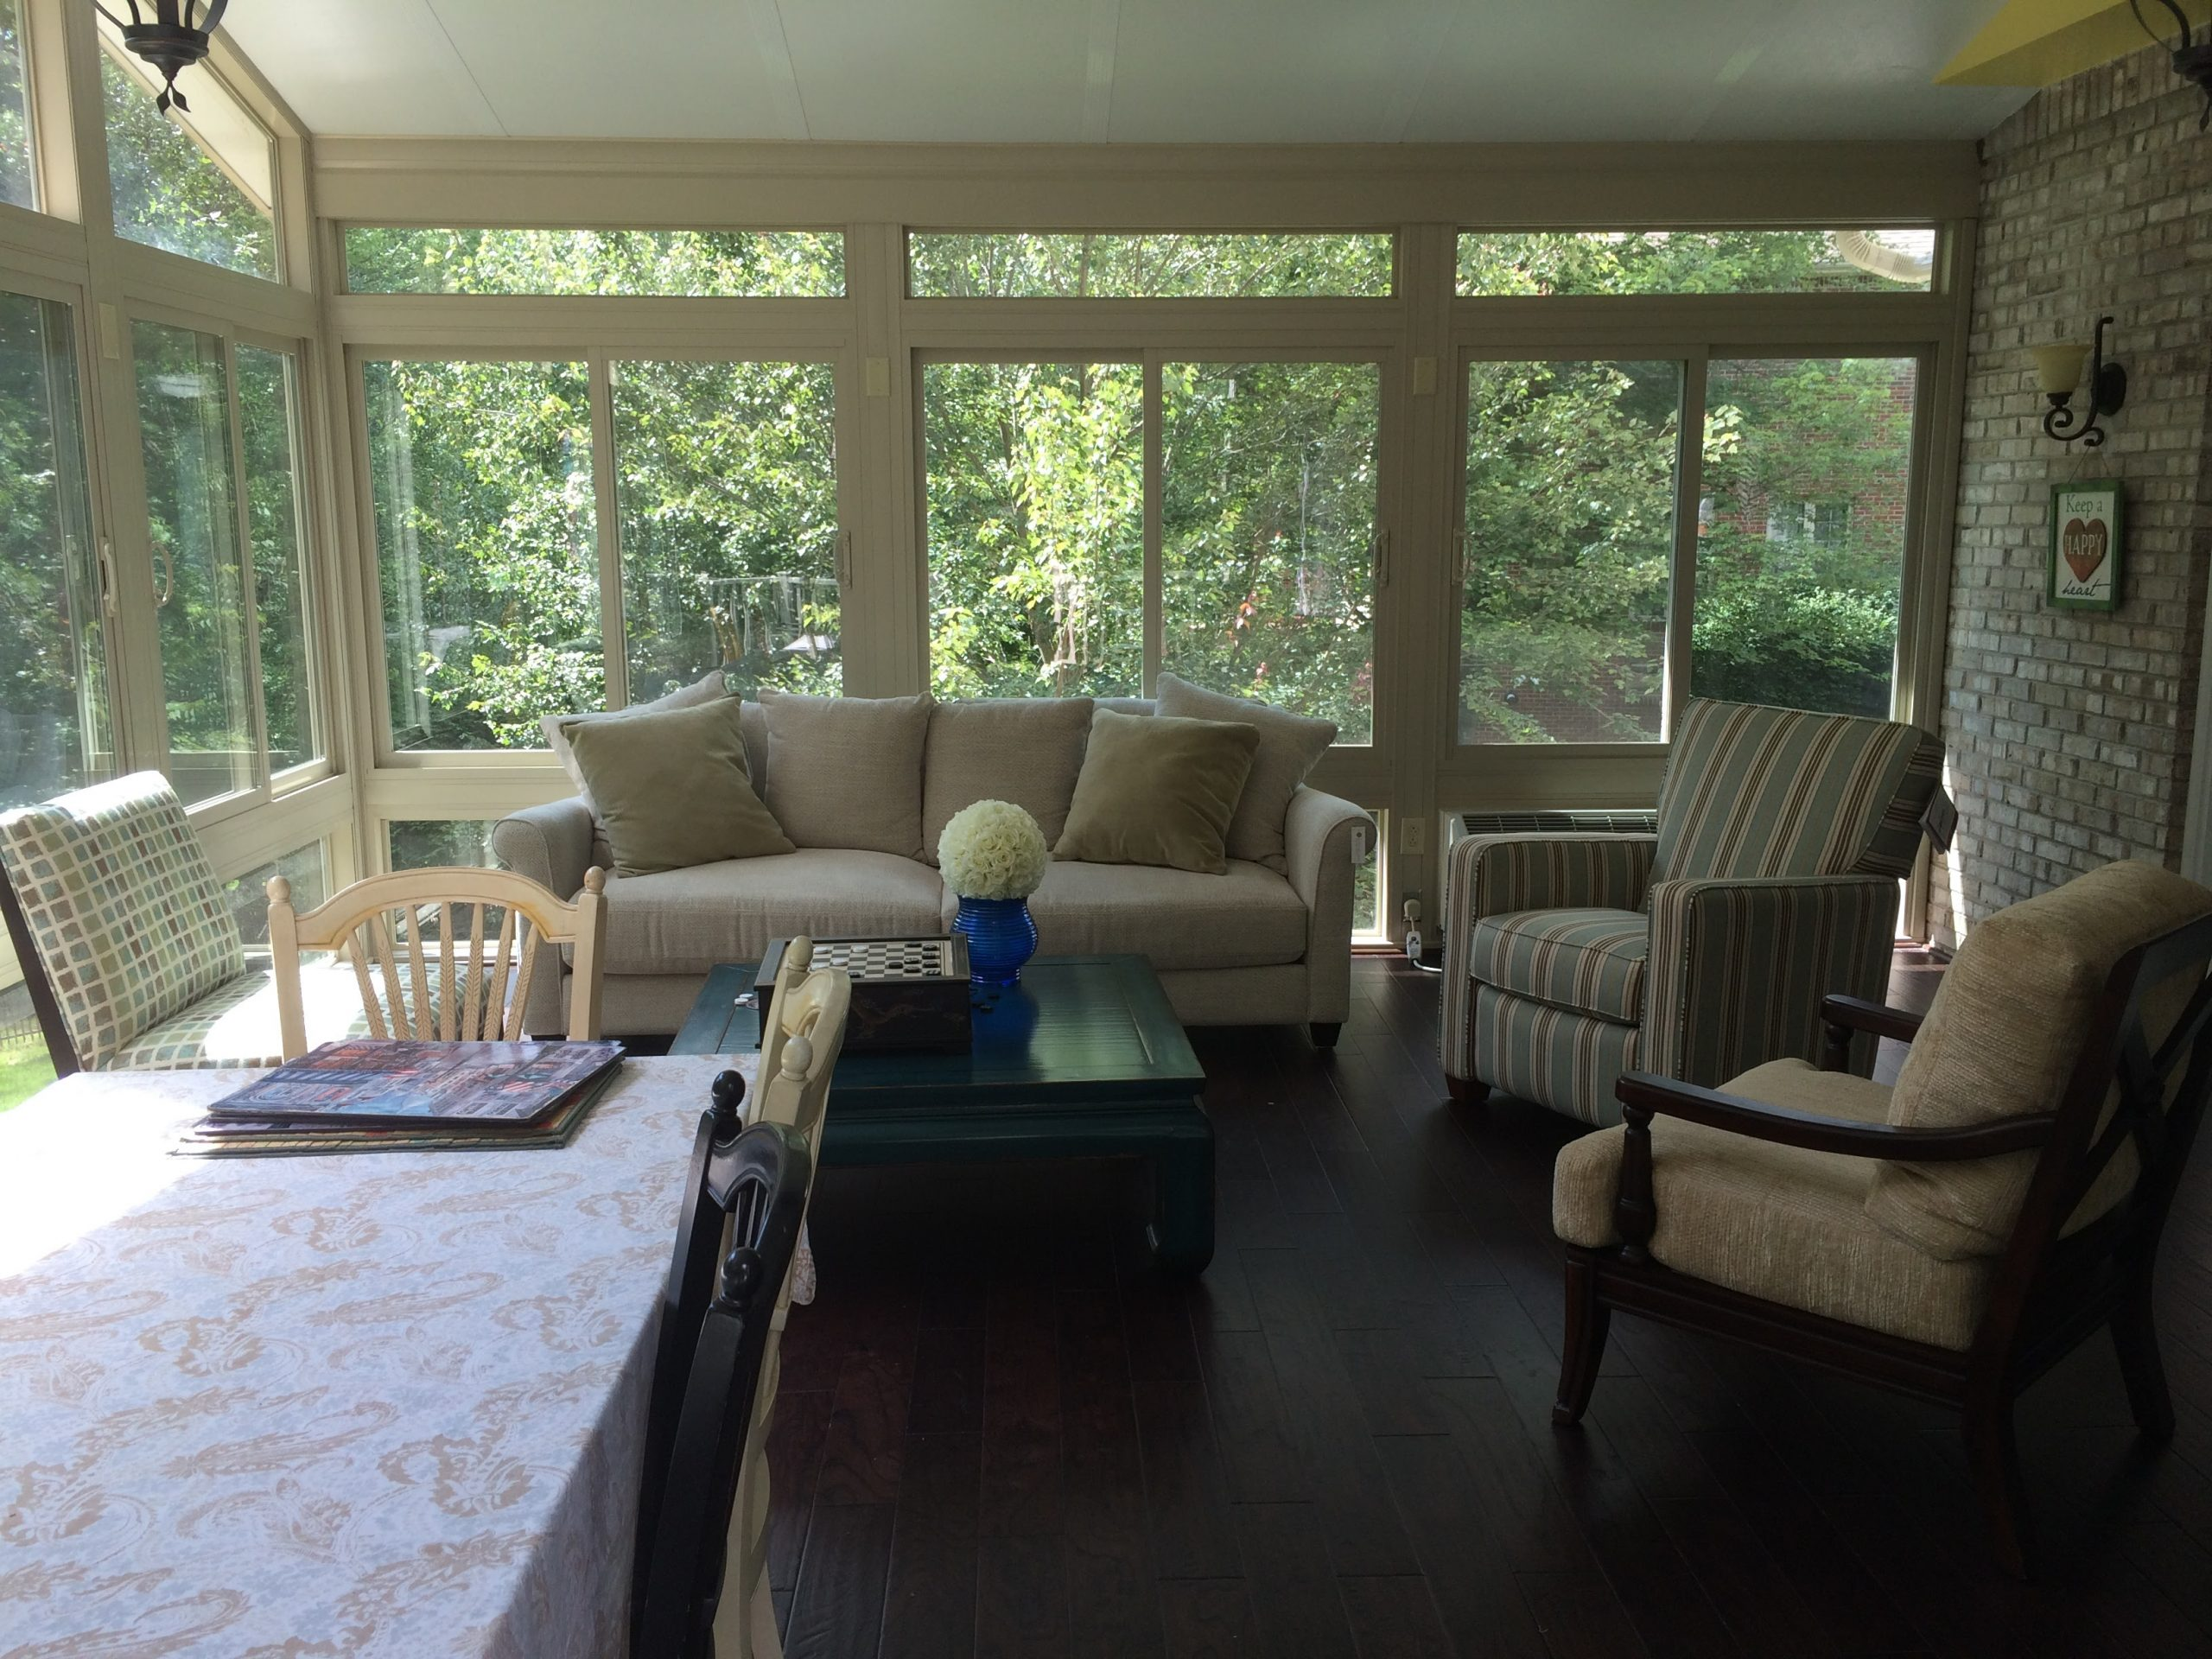 interior views of sunrooms by betterliving patio sunrooms of pittsburgh